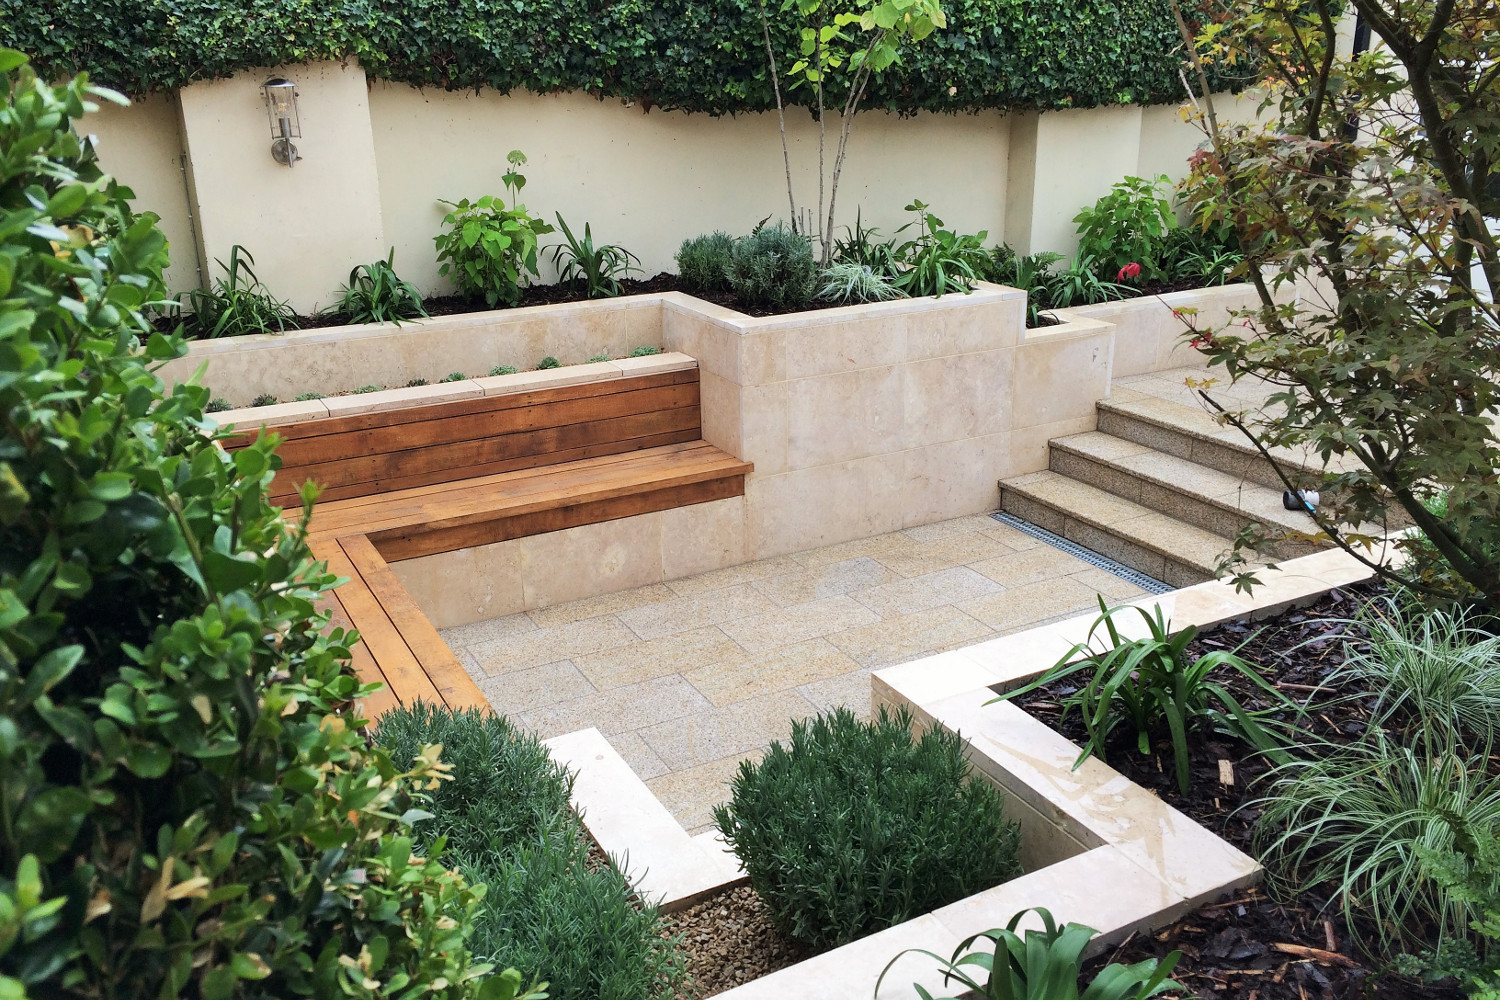 Stylish sanctuary garden in Glasnevin, Dublin - Tim Austen ...